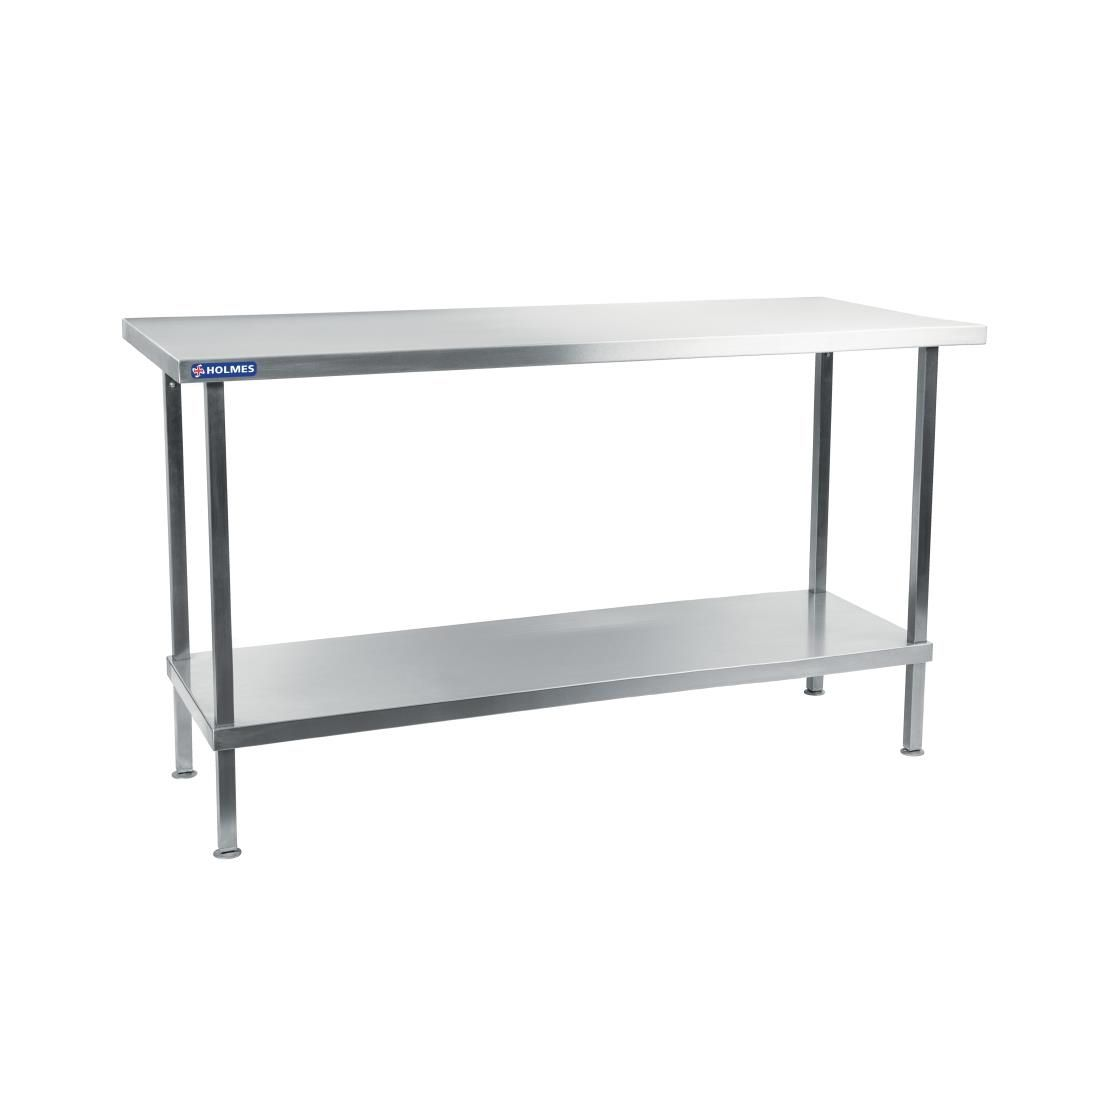 Holmes Stainless Steel Centre Table 1500mm - DR057